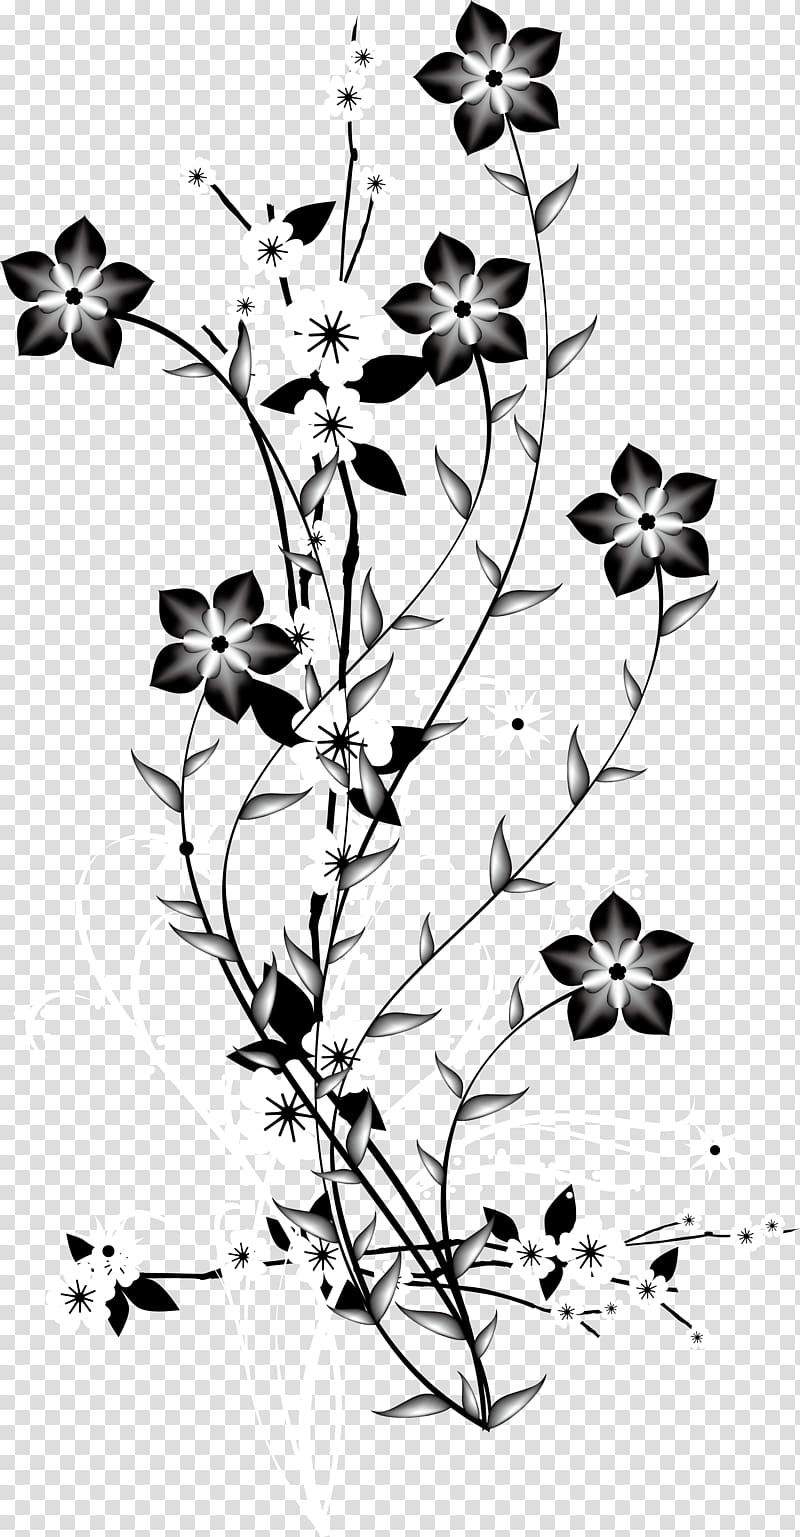 China Japan Flower Euclidean , Black and white decorative.